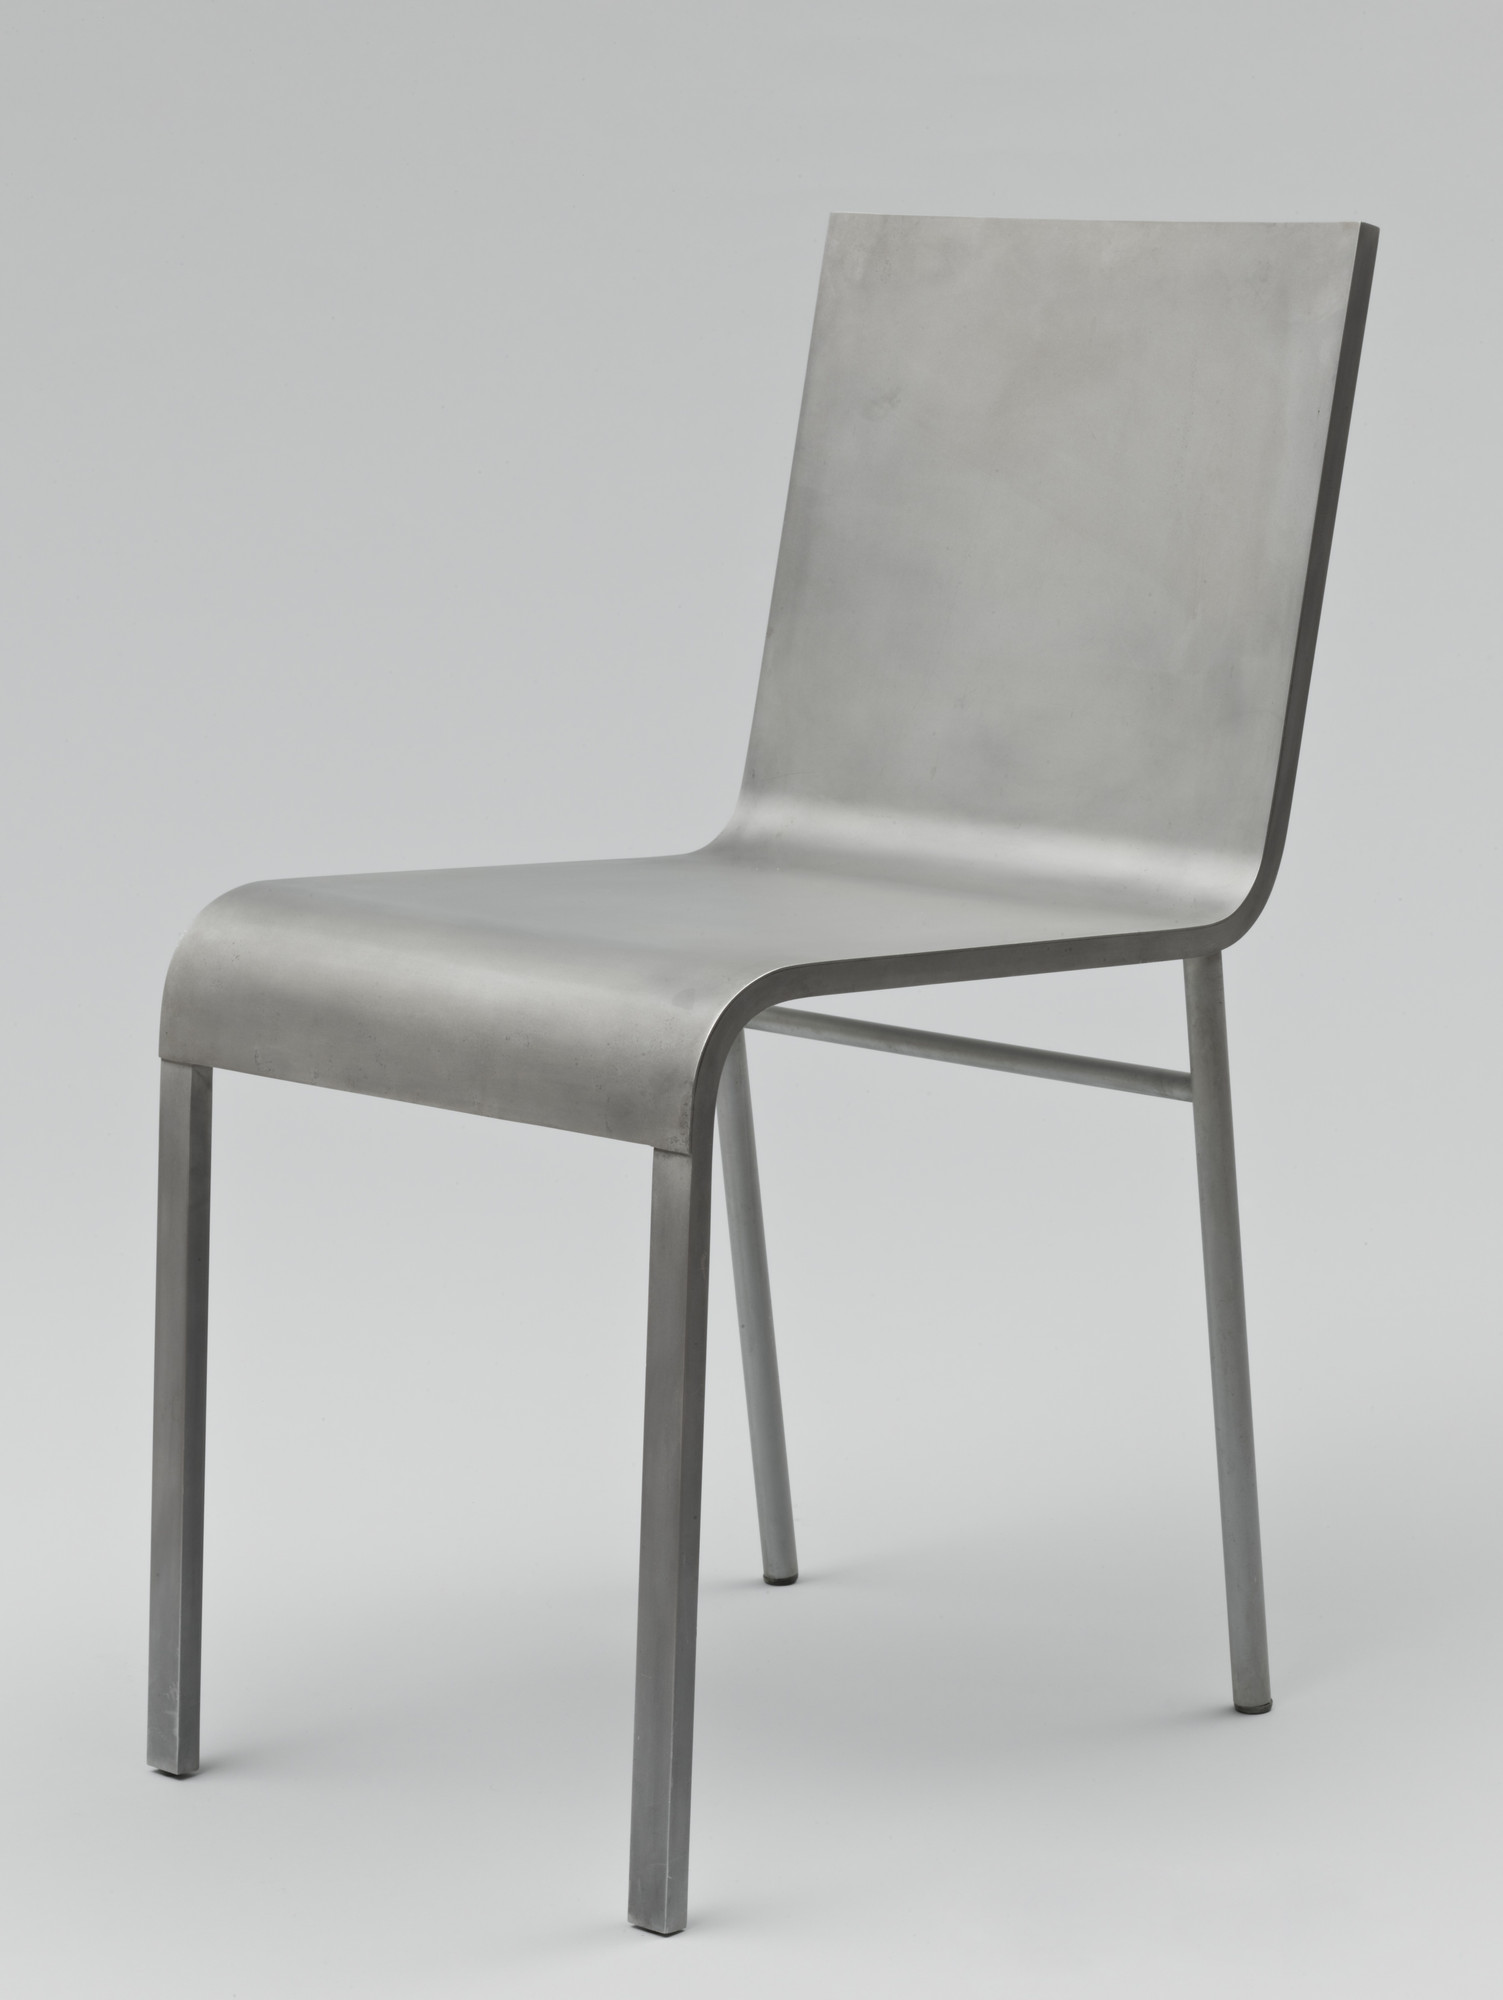 Maarten Van Severen. CN° II Chair. 1992